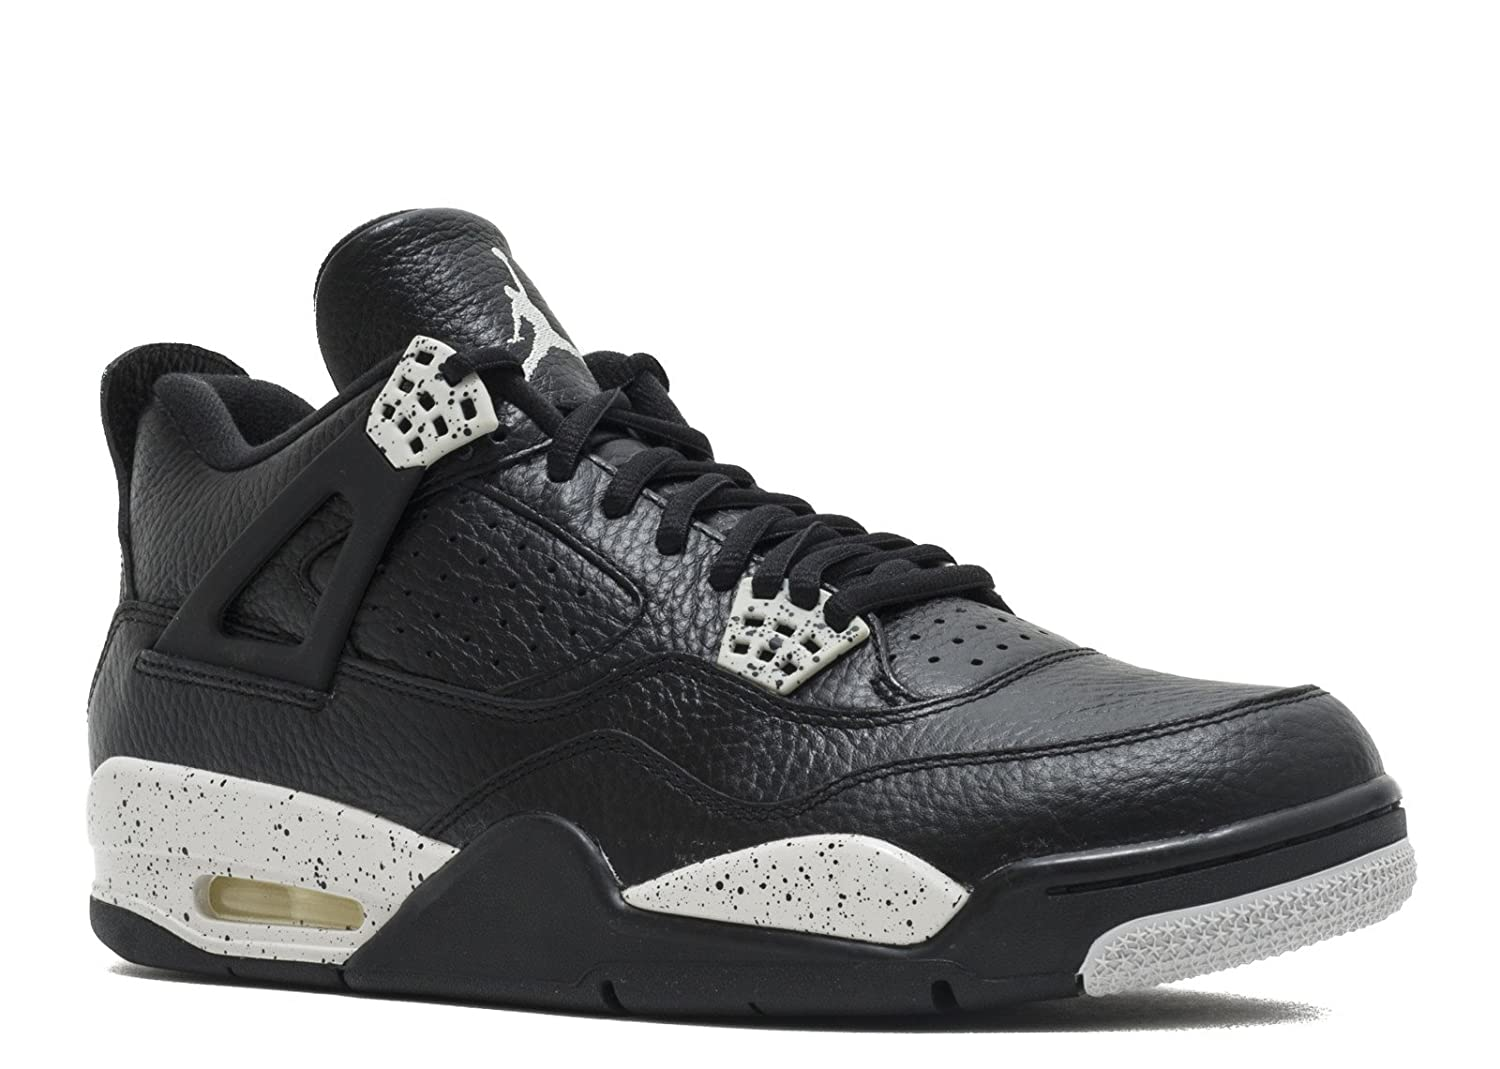 e080bf70b3da9 Jordan Air 4 Retro LS Oreo Men's Shoes Black/Tech Grey-Black 314254-003  (7.5 D(M) US)